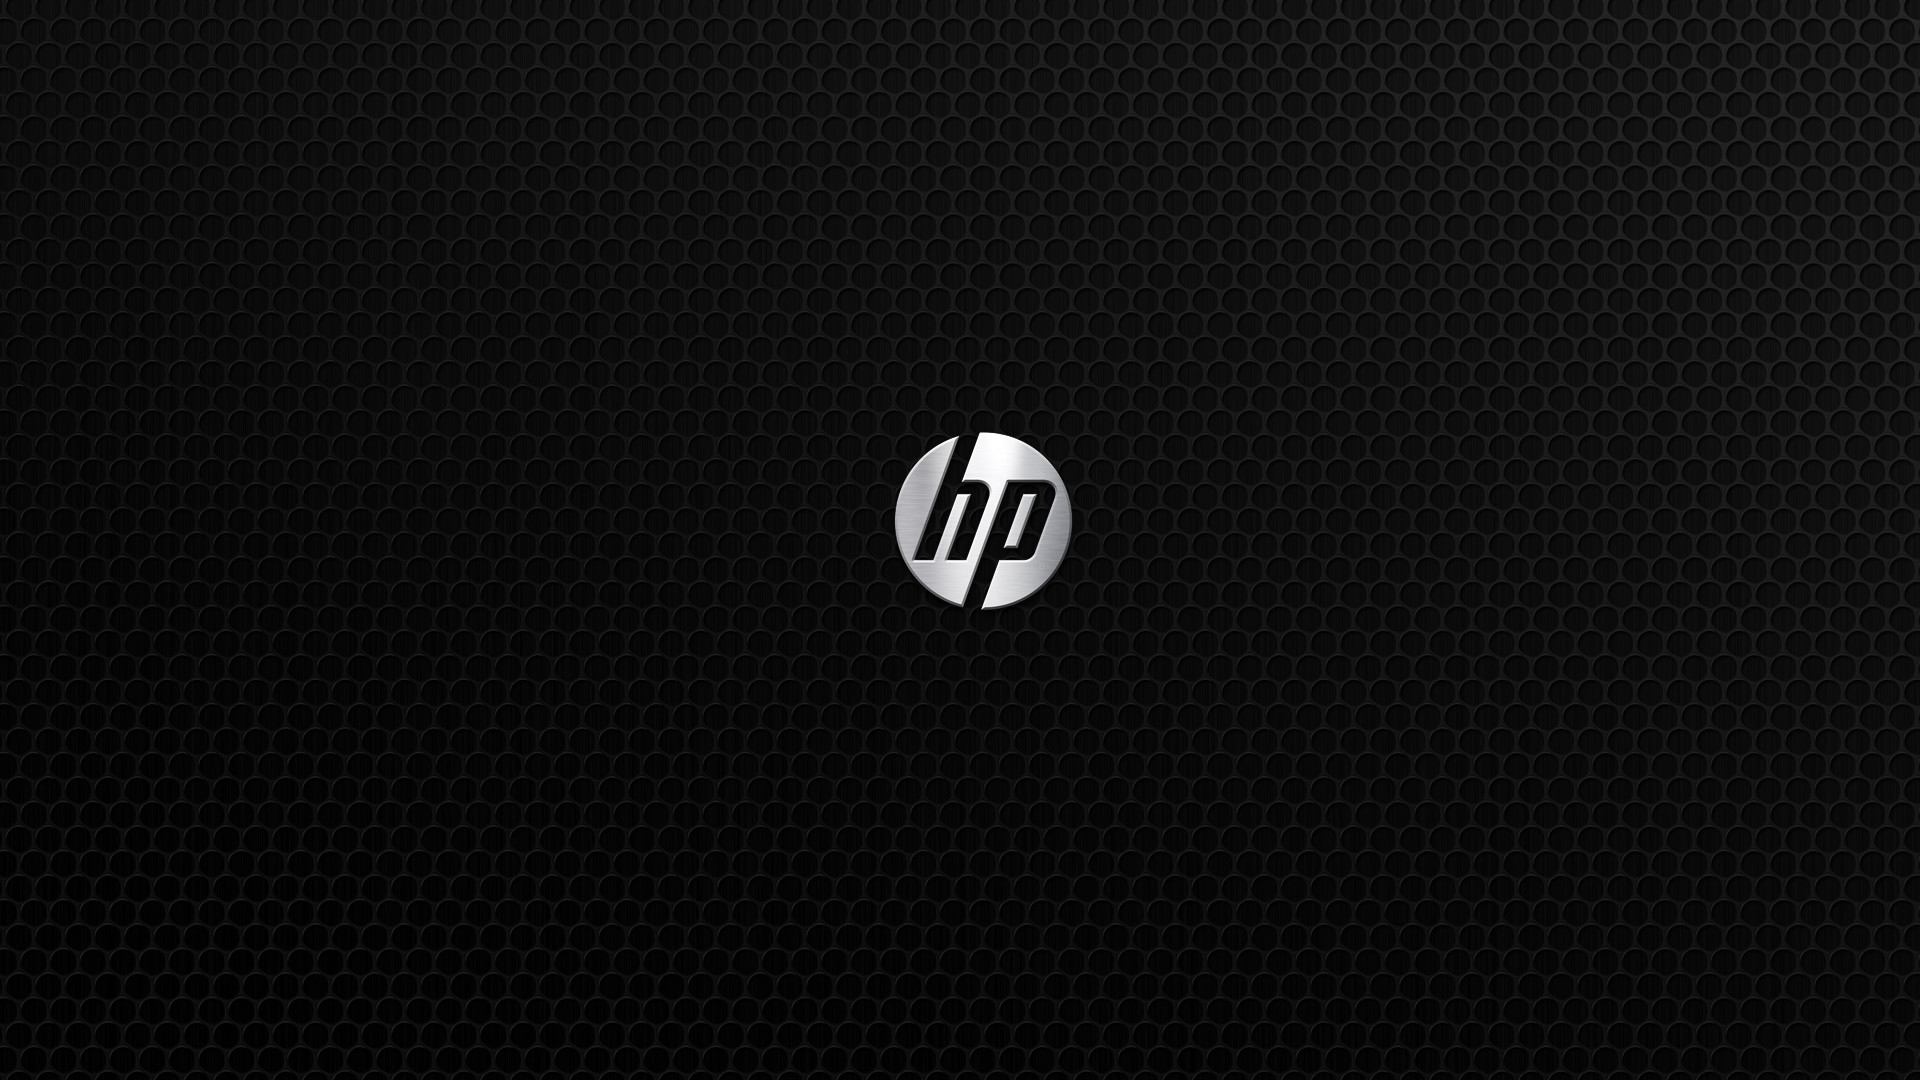 1920x1080 - Wallpapers for HP Envy 20